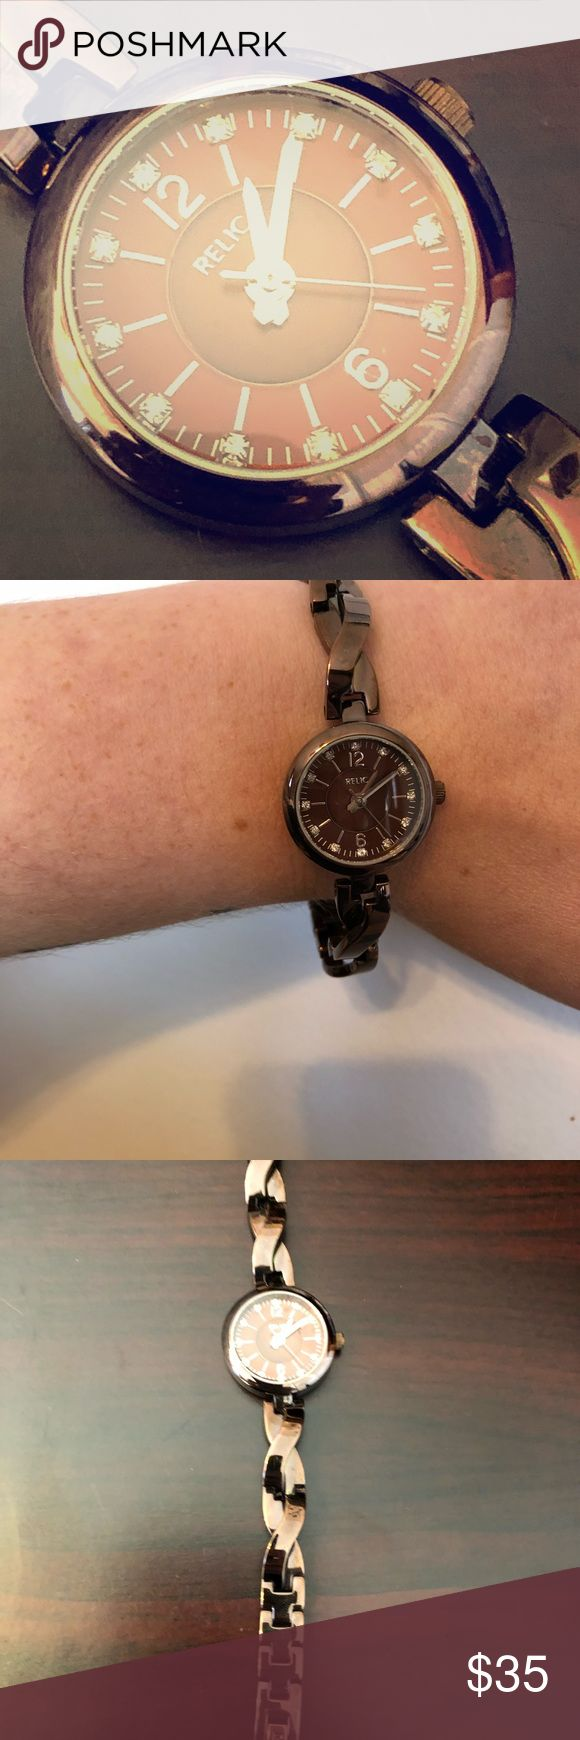 Thin women's Relic watch! Like new! Women's Relic watch, stainless steel. Bronze color, very sleek. Like new! Comes with one additional chain link. 7 1/4in long with extra link. Last picture shown for face size reference Relic Accessories Watches